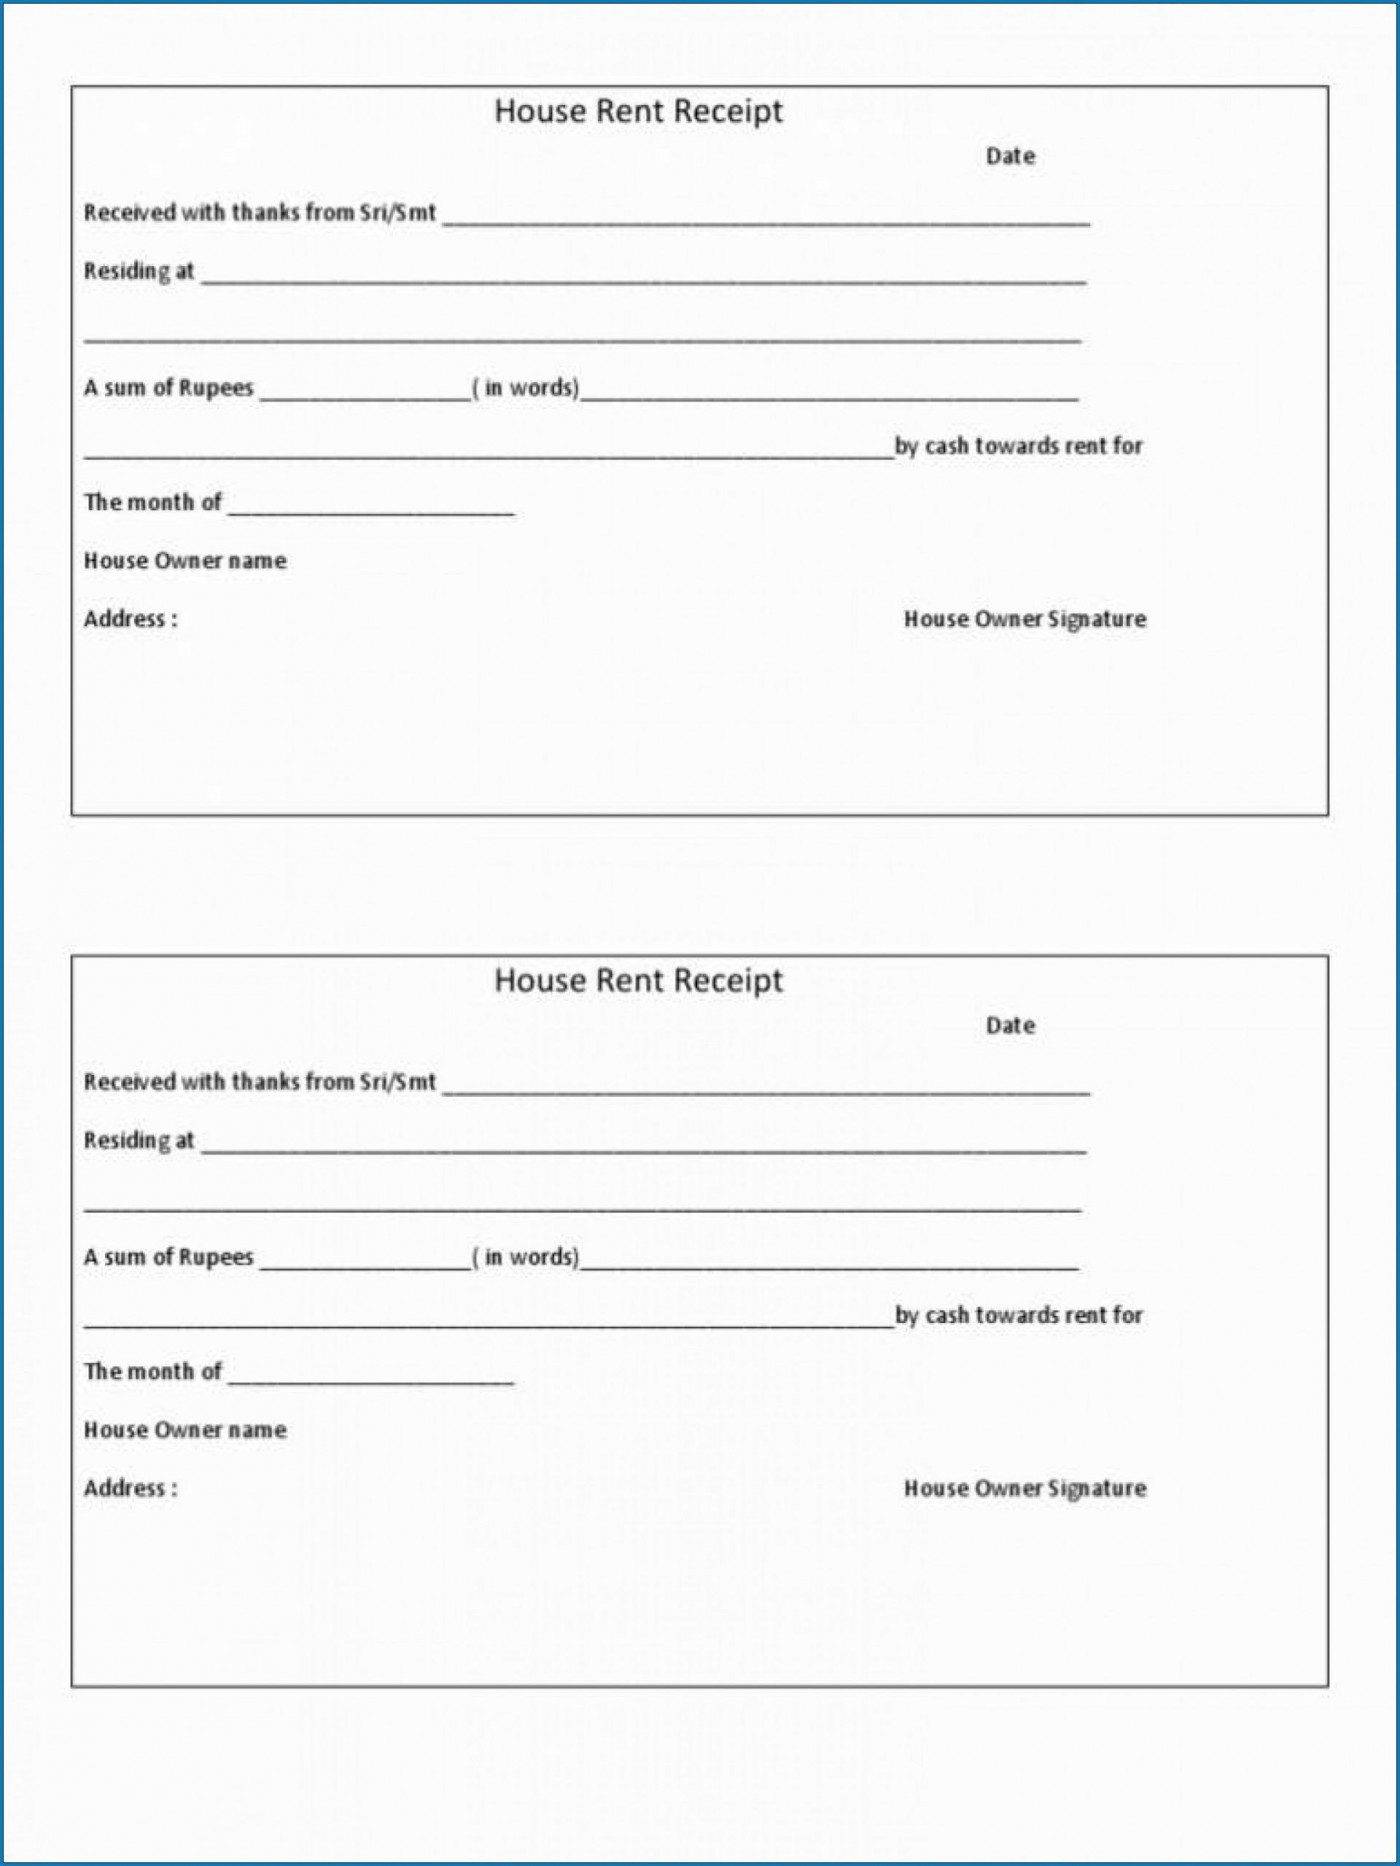 009 Stirring House Rent Receipt Sample Doc Design  Template Word Document Free Download Format For Income Tax1400